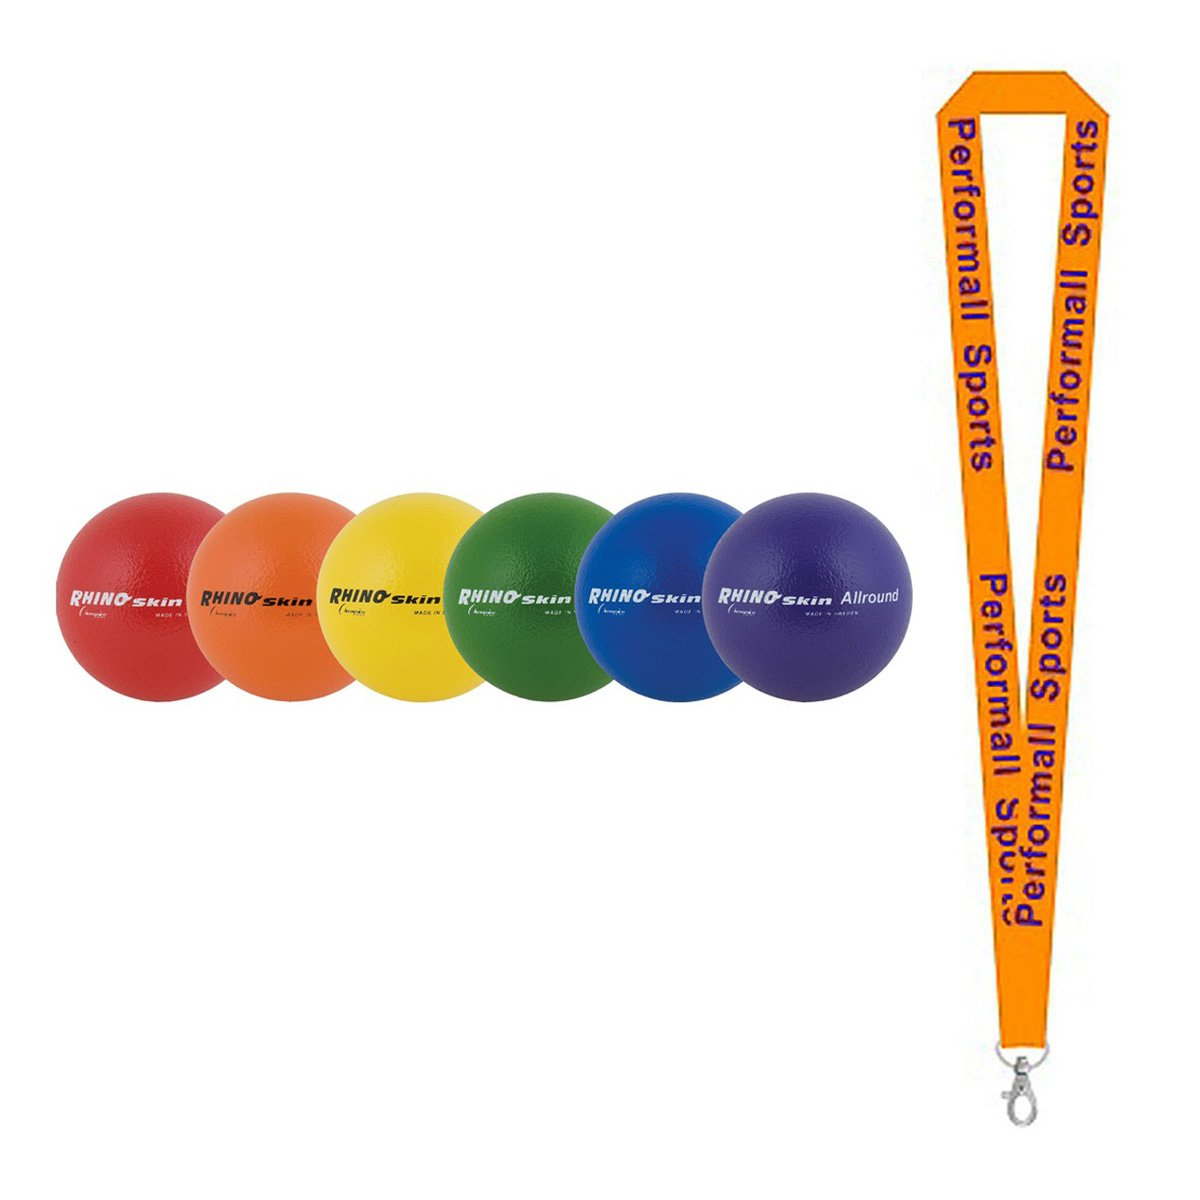 Champion Sports Rhino Skin All Around Set Assorted (Set of 6) with 1 Performall Lanyard RS7SET-1P by Performall Sports Dodgeballs